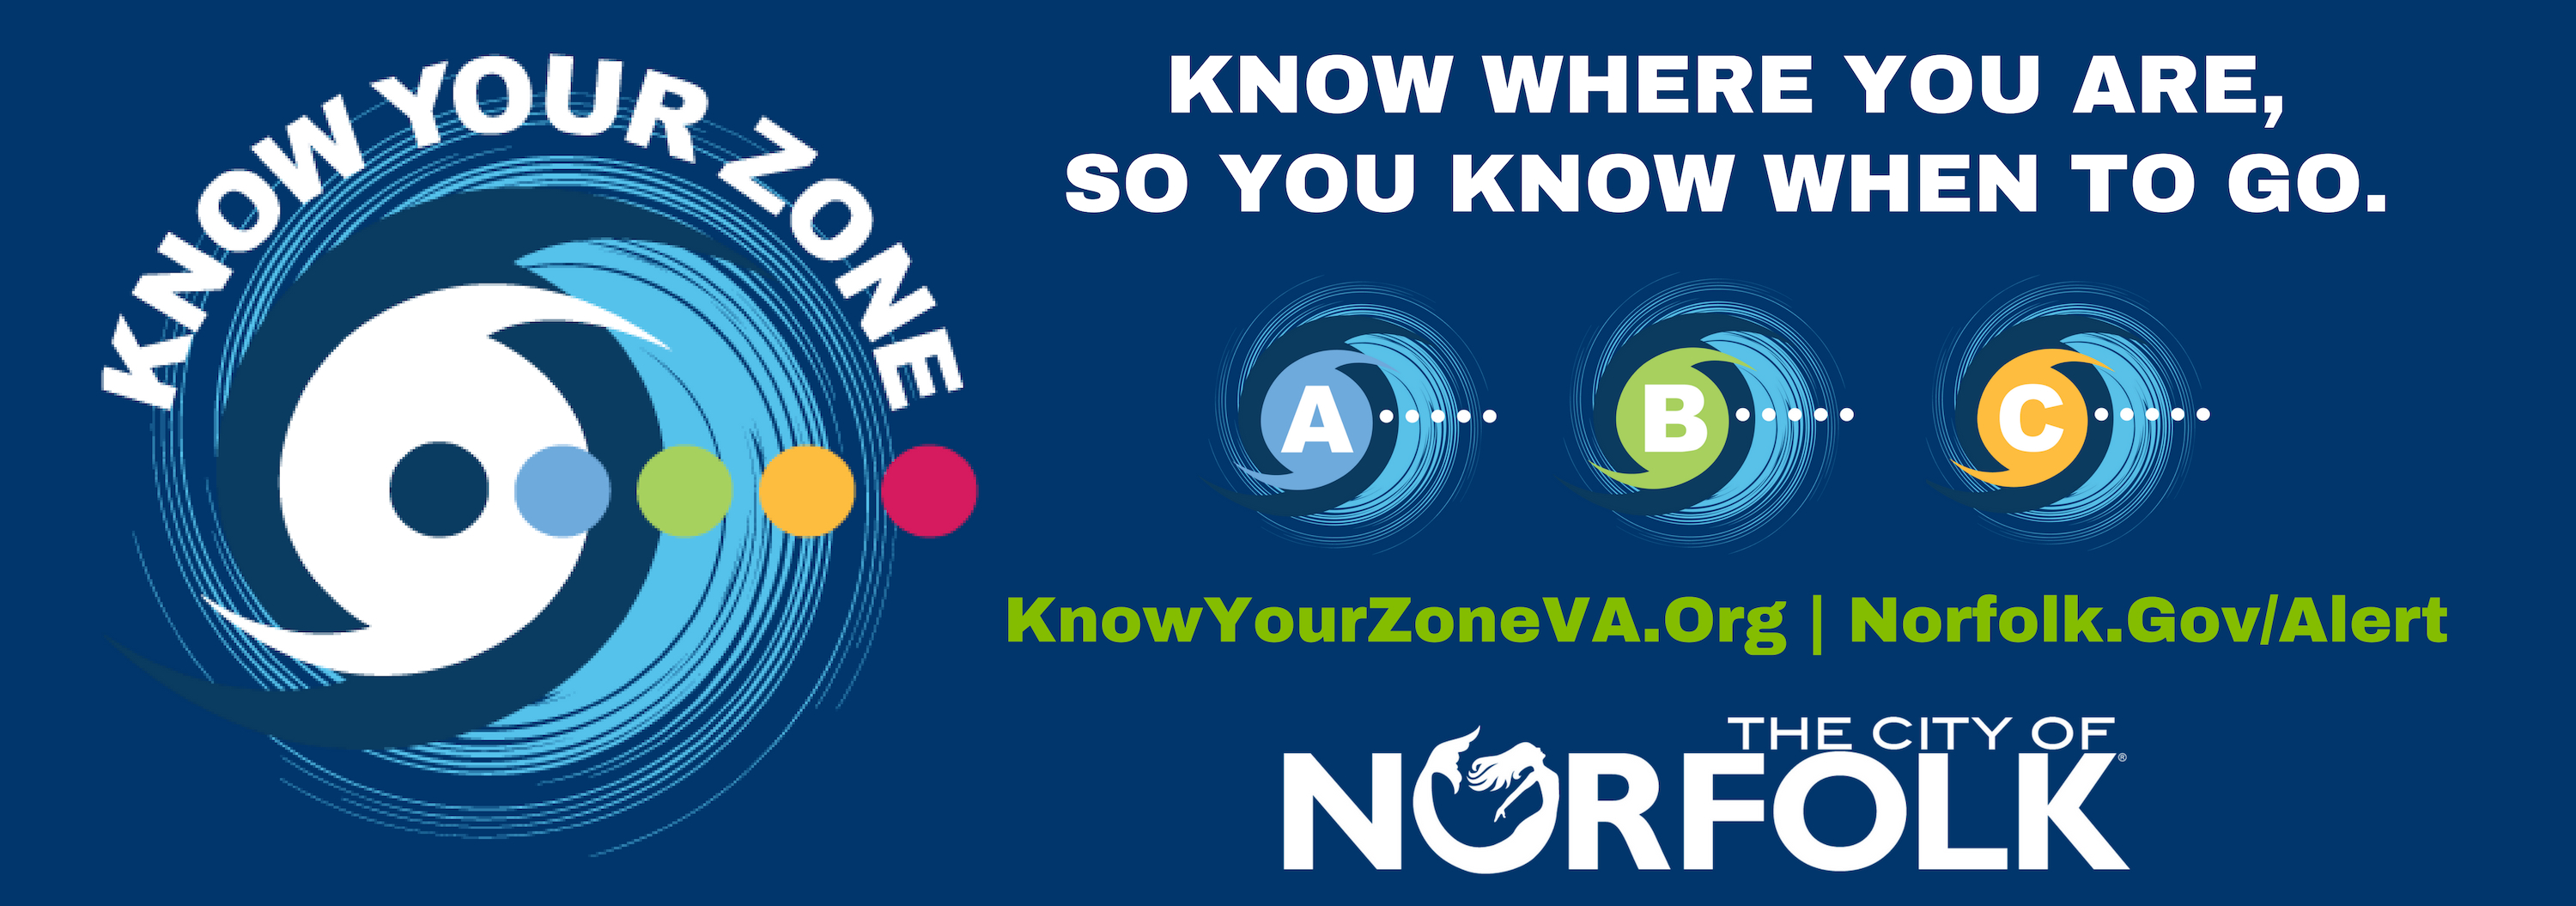 Know Your Zone - Know where you are, so you know when to go. KnowYourZoneVA.org | Norfolk.gov/Alert